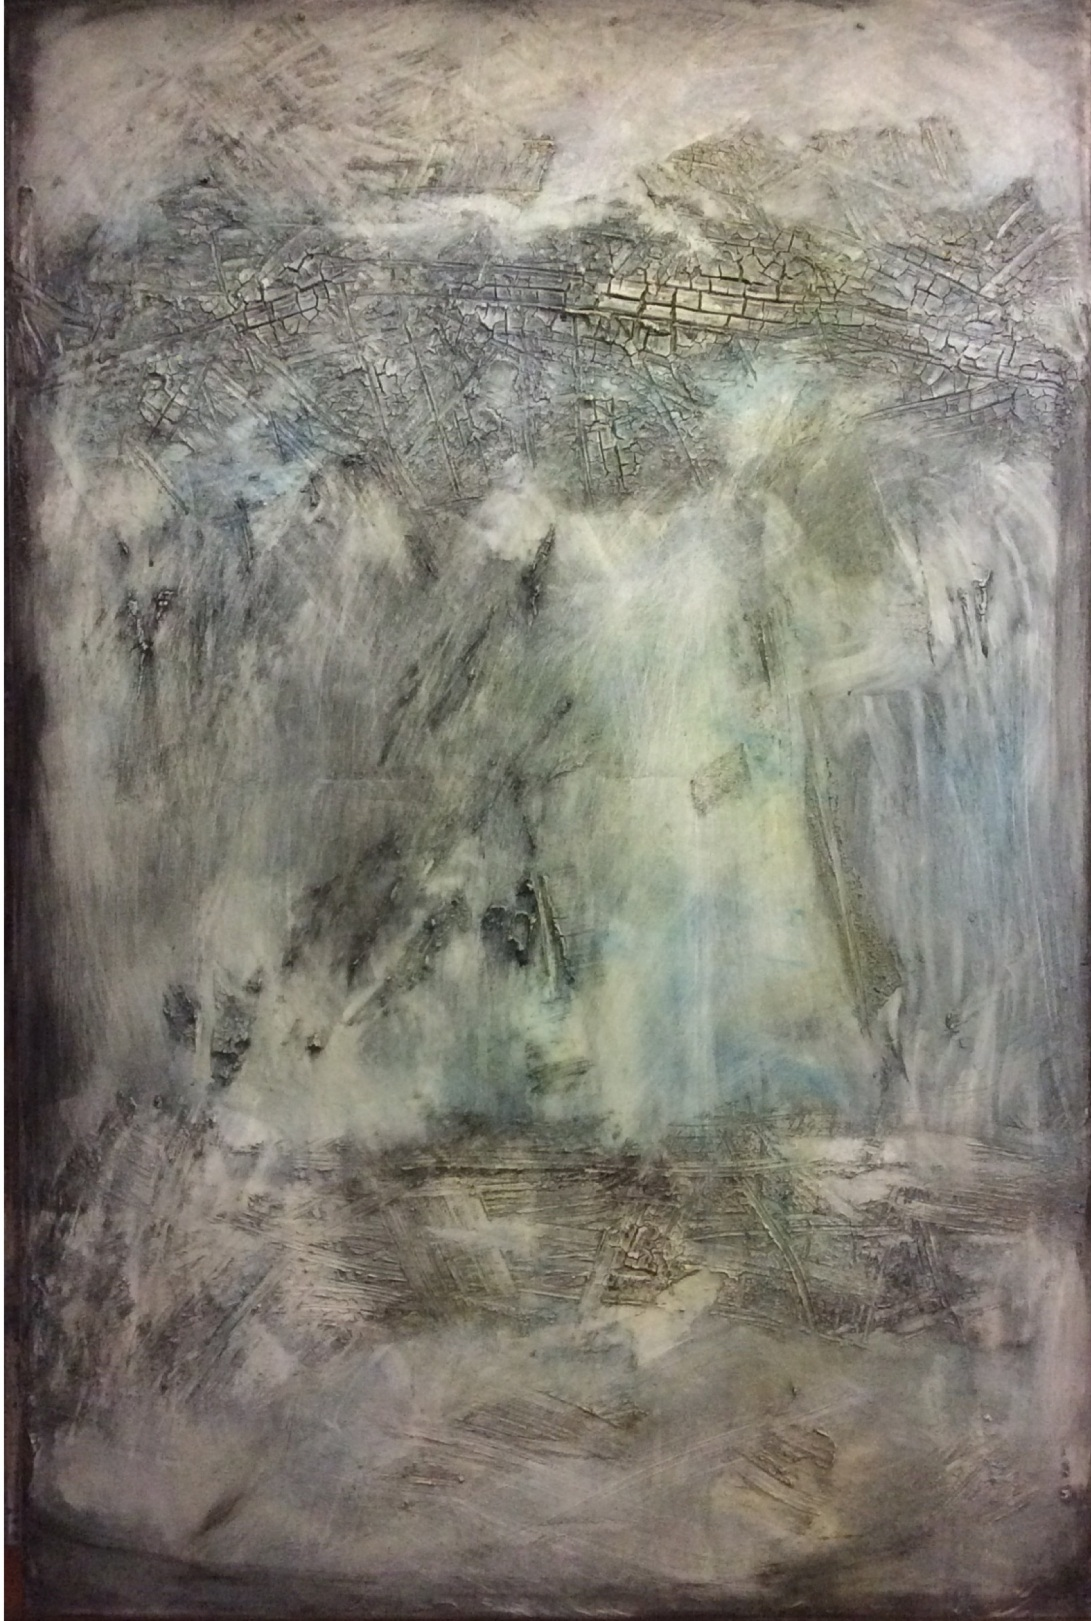 Textured Abstract Painting in Grey and a touch of Blue